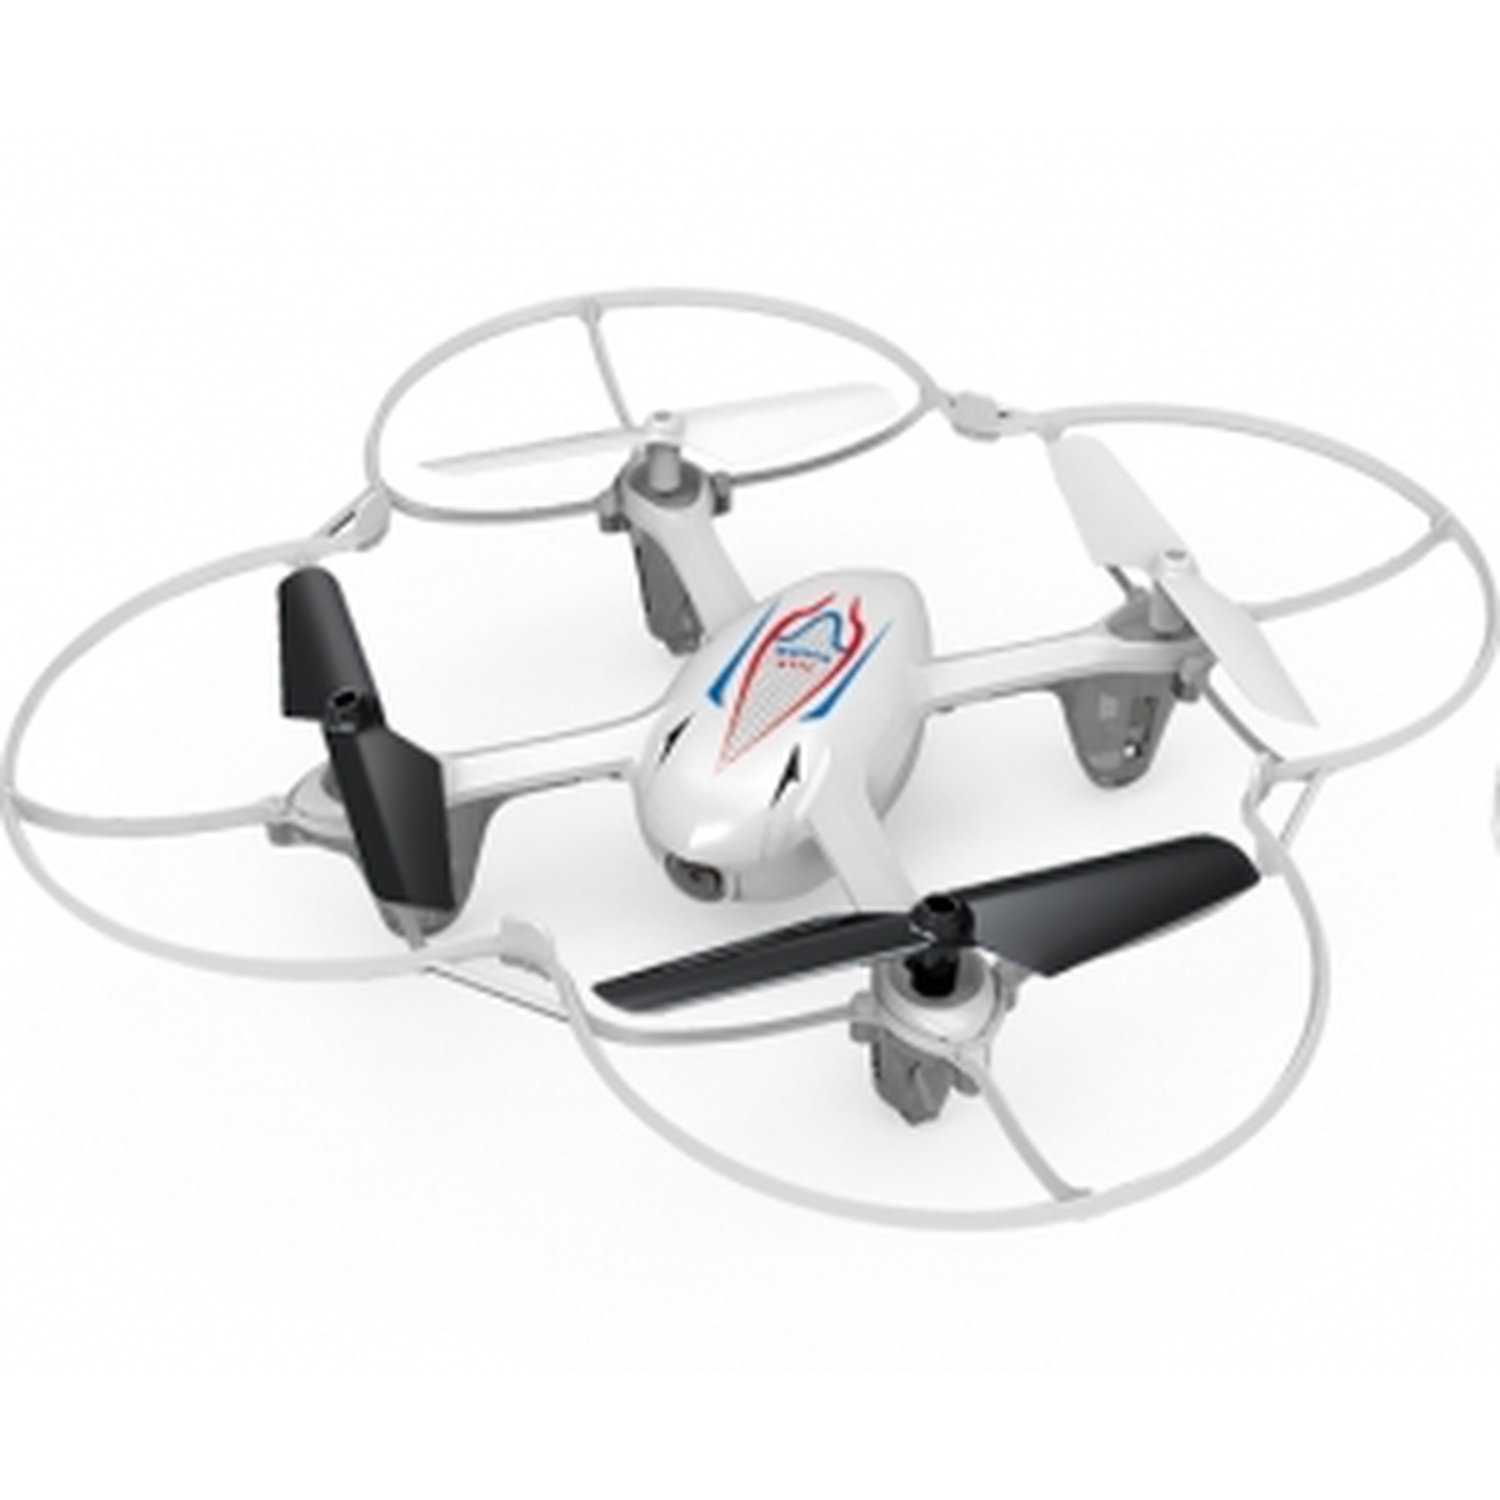 QUADCOPTER DRONE SYMA X11C 2.4GHz 4ch 6 axis Gyro RC hd camera jjrc h21 six axis drone remote control aerial vehicle drone